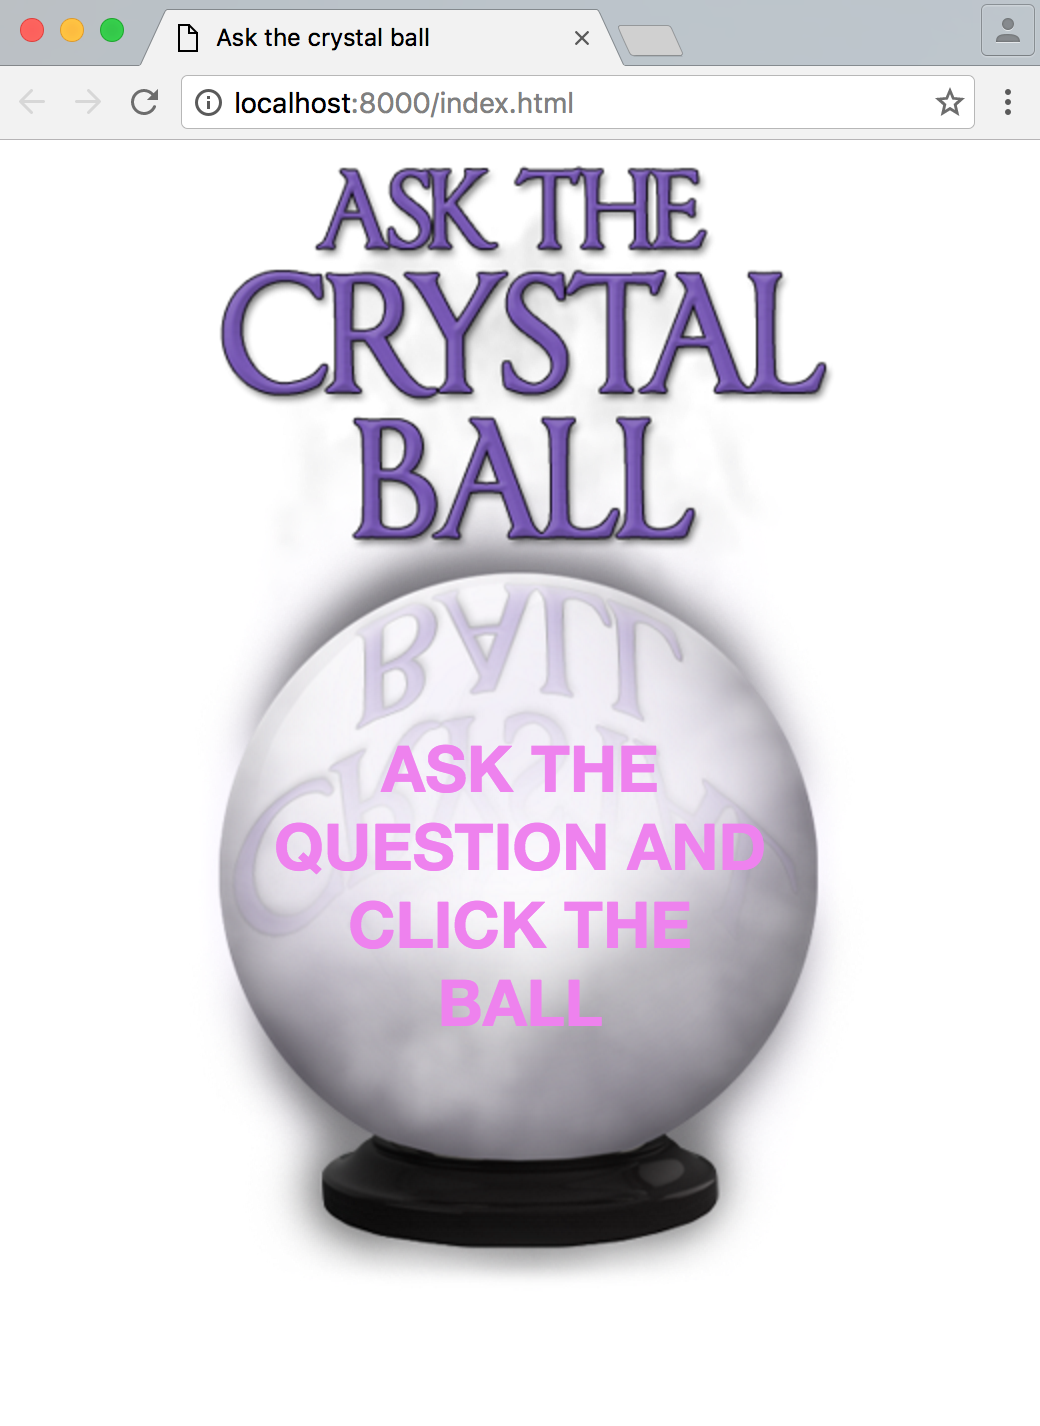 Crystal ball app in browser